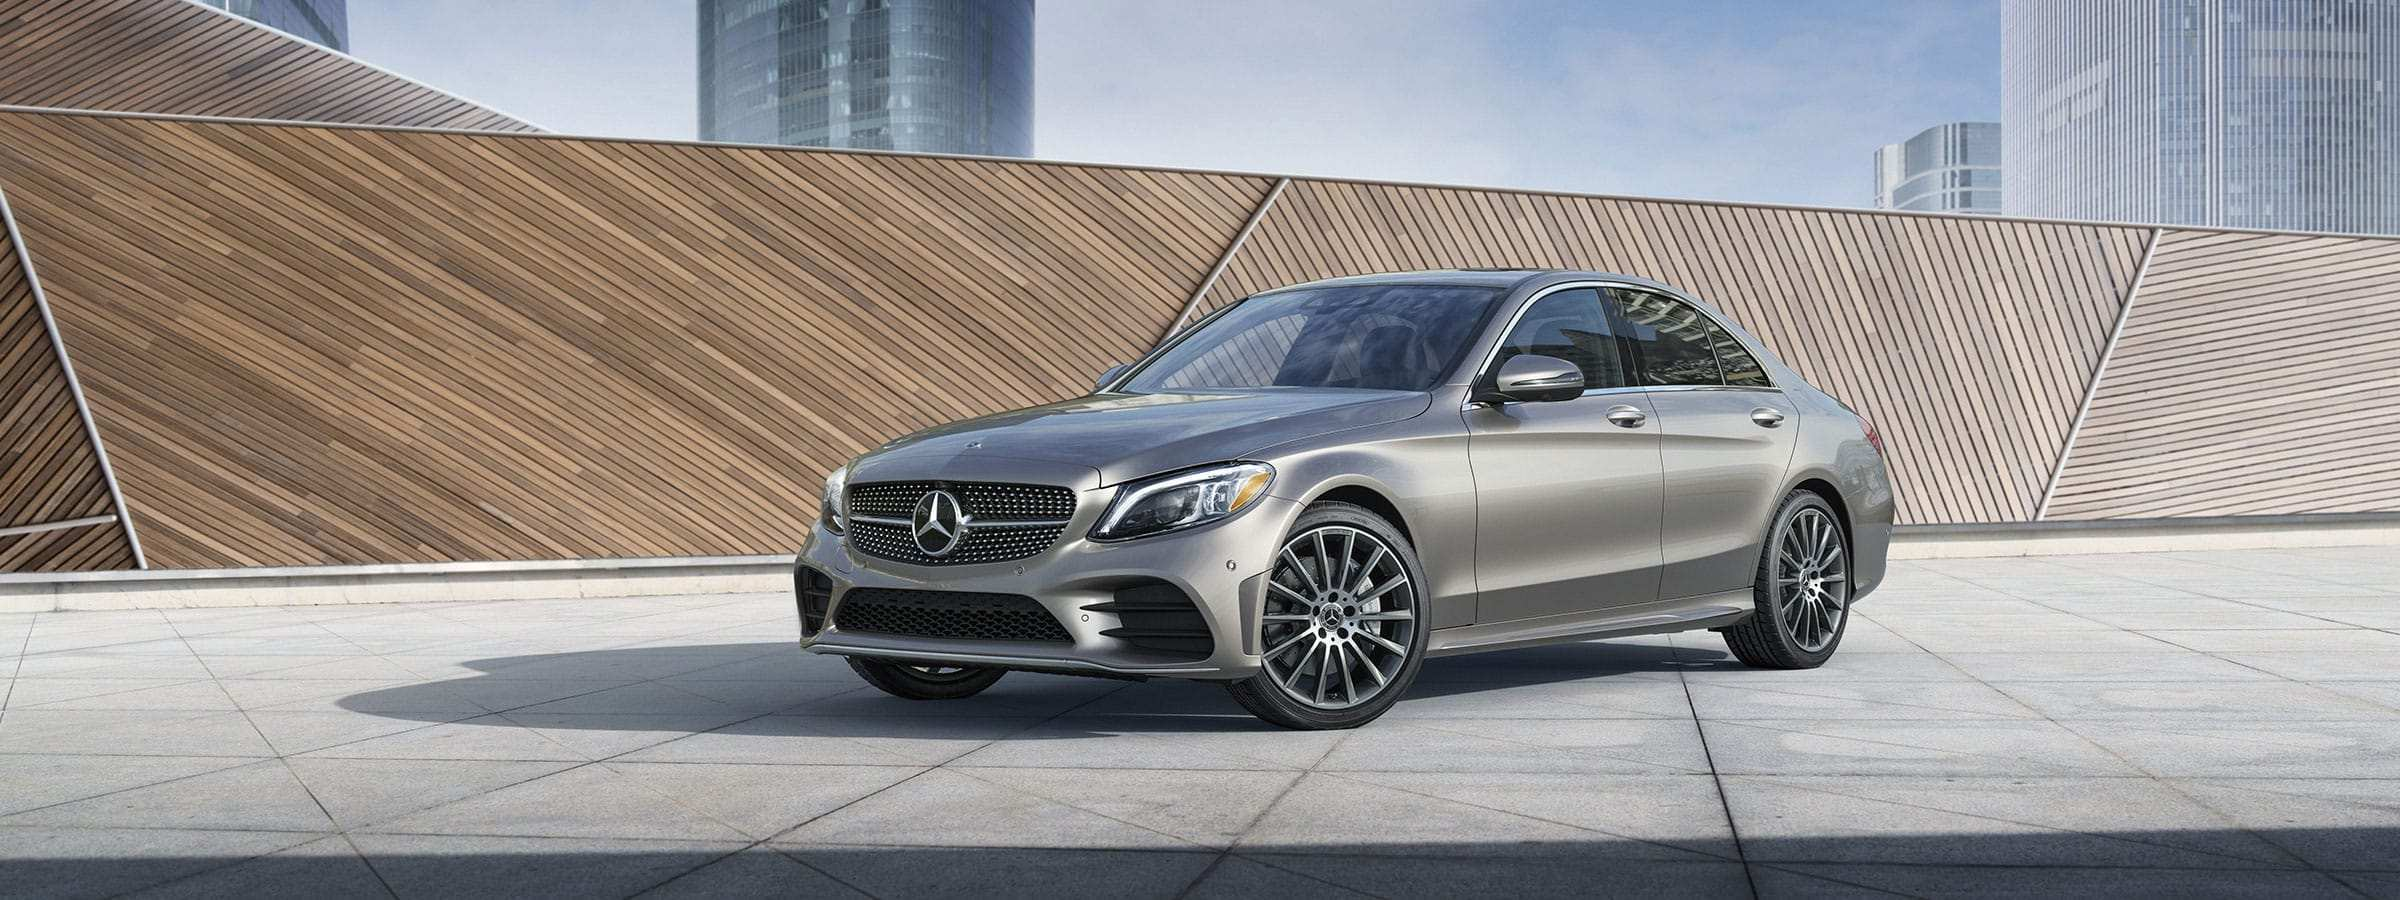 59 New 2019 Mercedes A Class Usa Performance and New Engine by 2019 Mercedes A Class Usa